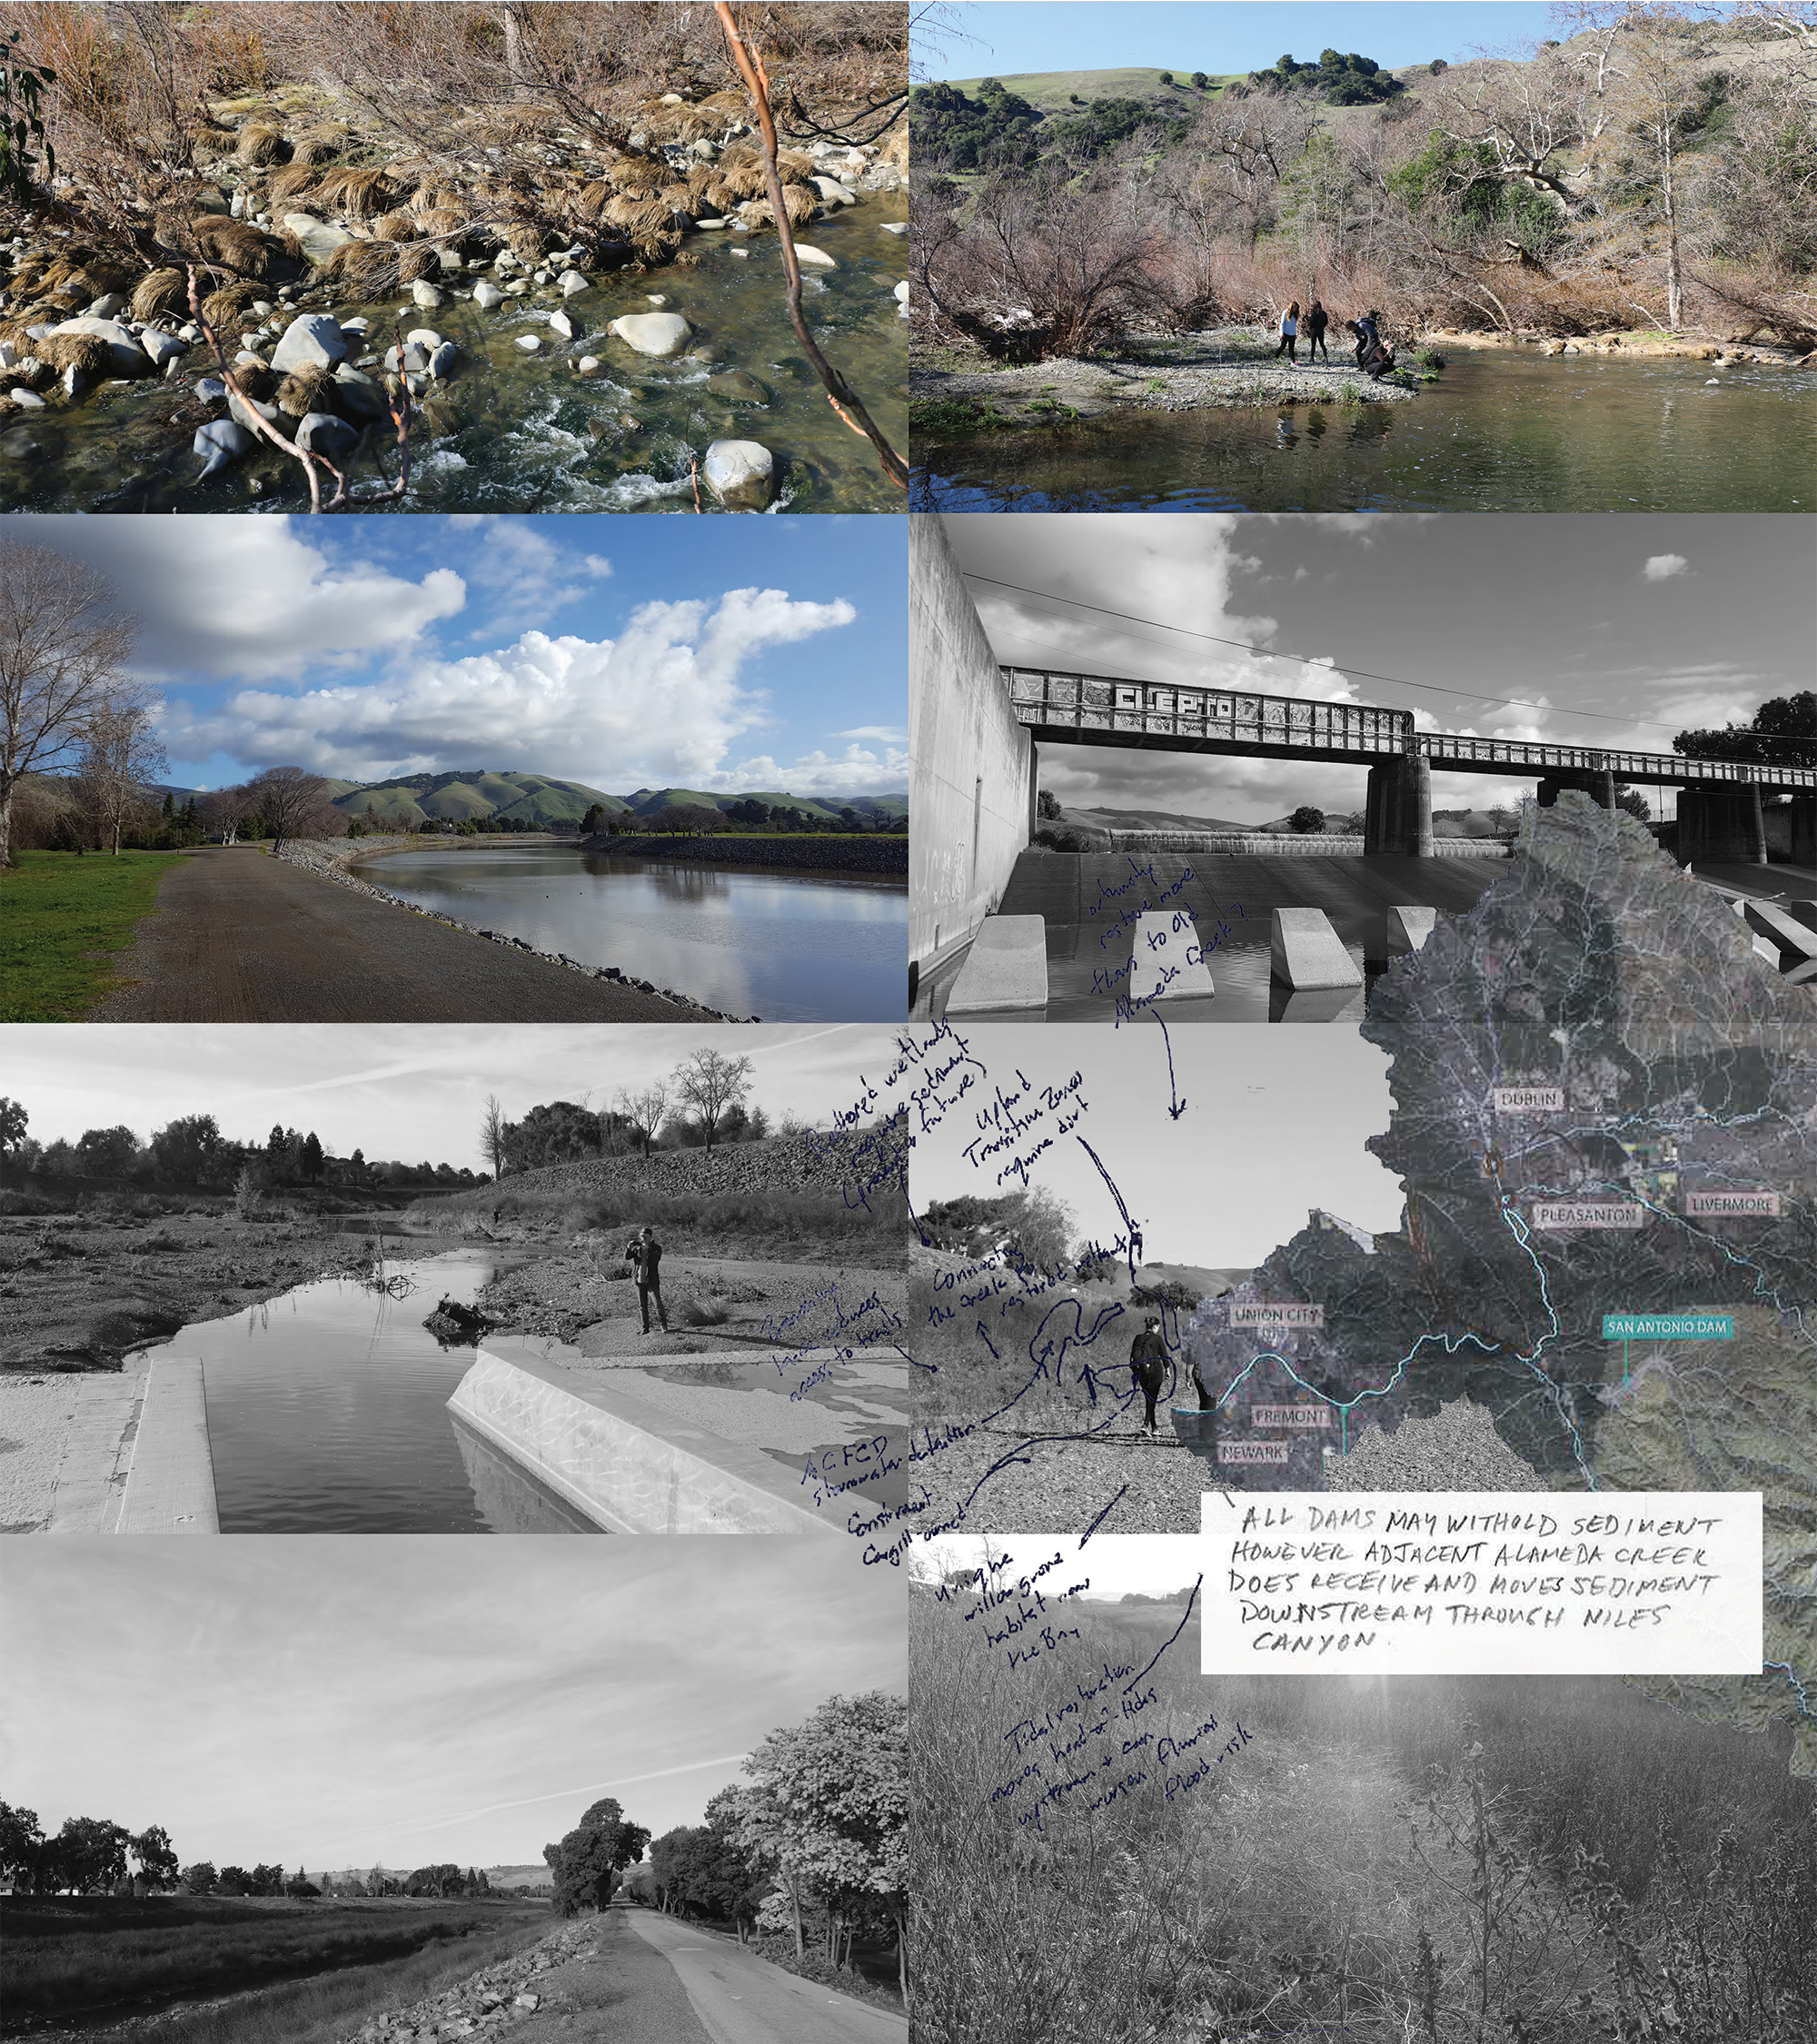 Photos from along the length of the flood control channel highlight the diverse character of the channel as it works through braided meanders near Niles Canyon (top left) to the channelized flood control channel that flows into the Bay near Eden Landing (bottom right). Conversations and mapping with local agencies helped us to gain an understanding of the systems that define the sediment-shed.